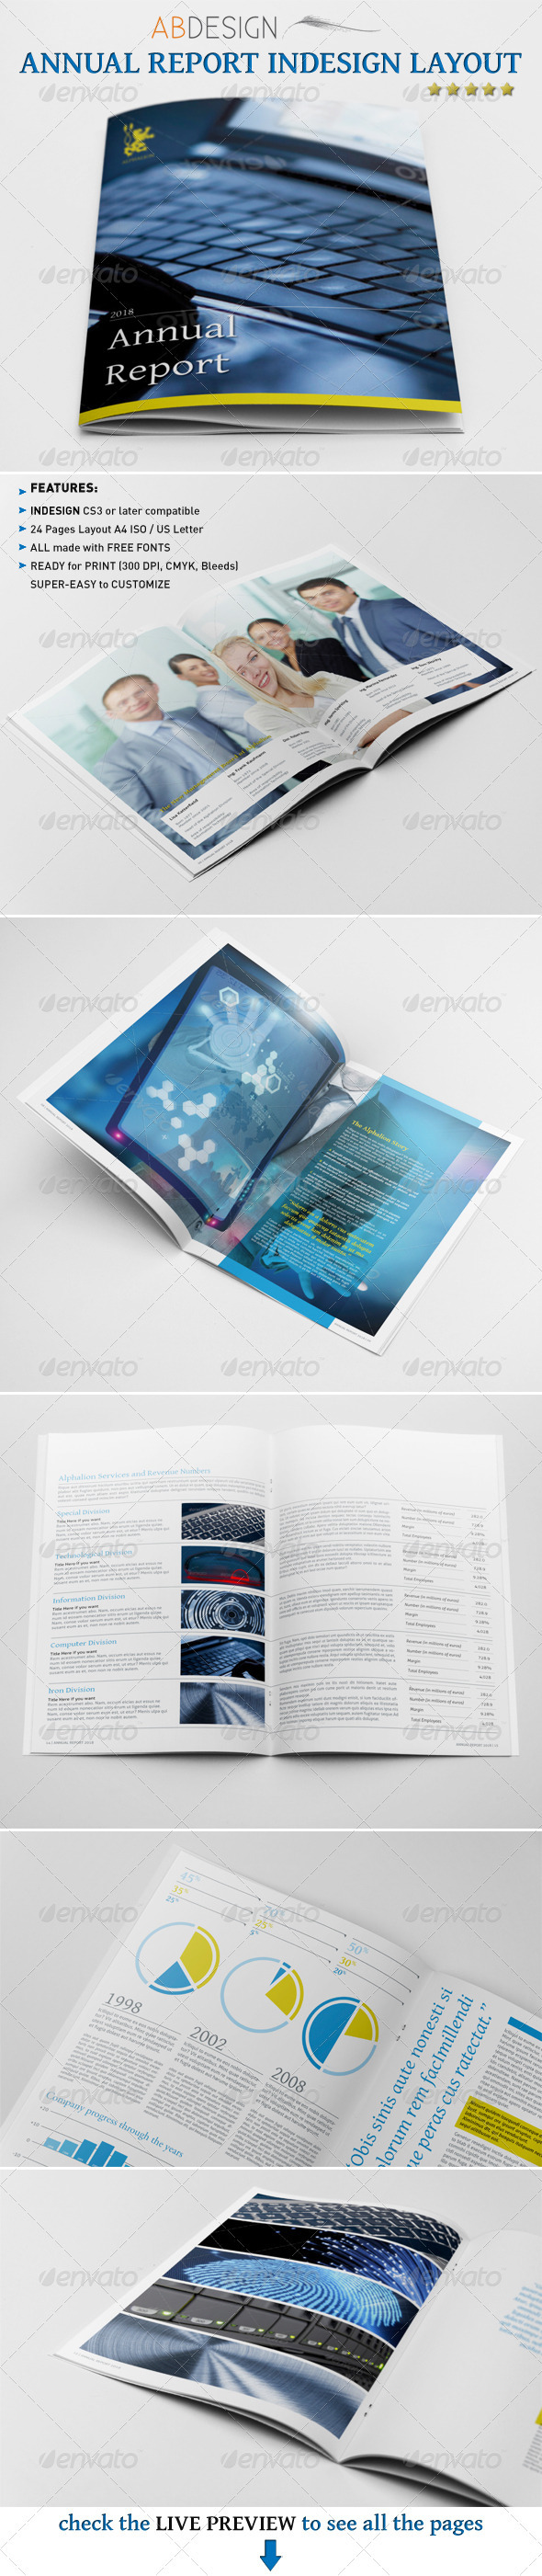 Annual Report Indesign Layout #GraphicRiver This is a complete ...